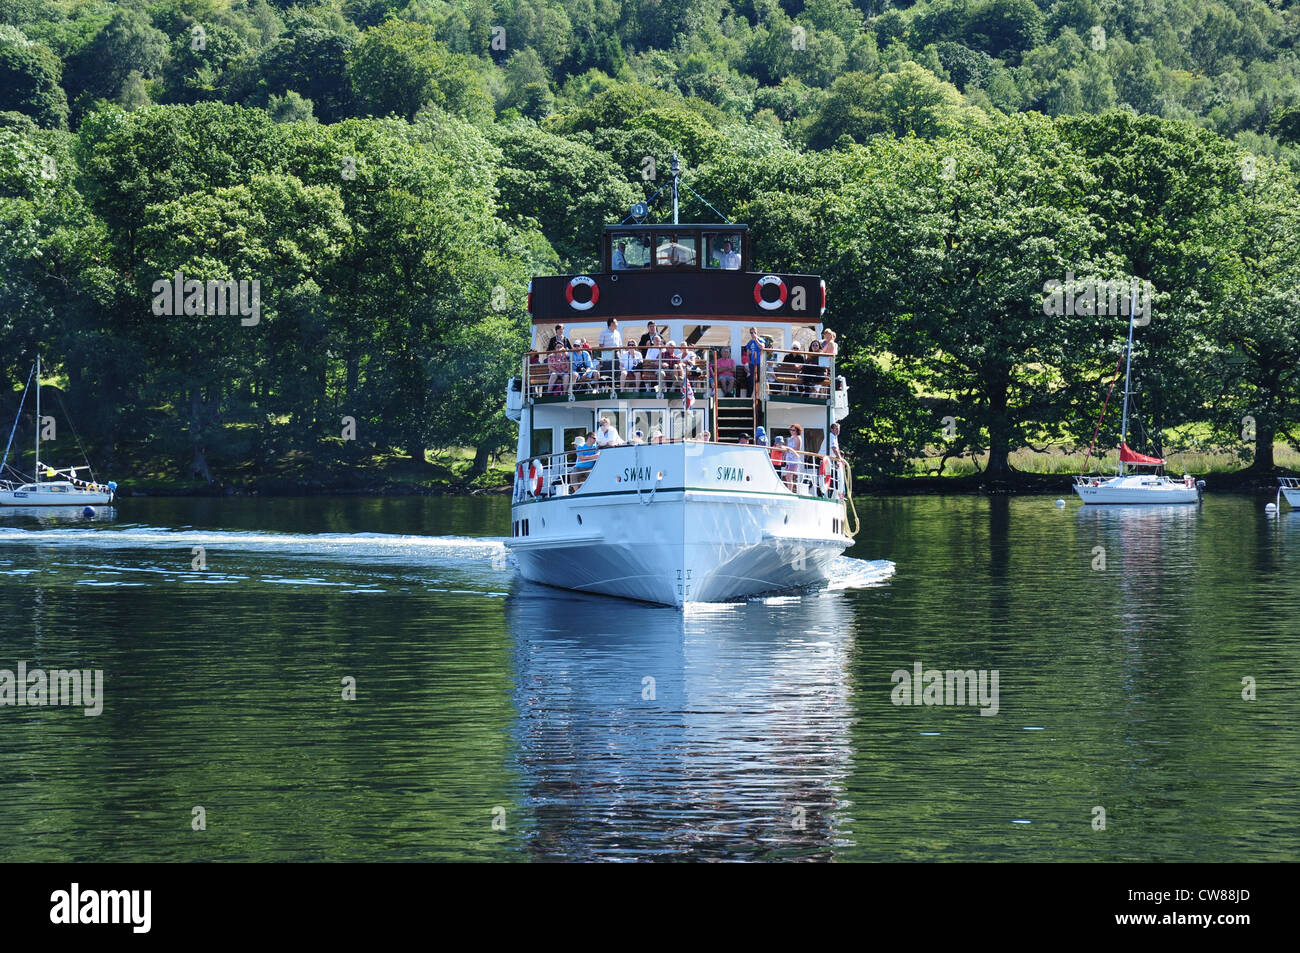 The steamship MV Swan, Lake Windermere, Cumbria, England, UK - Stock Image